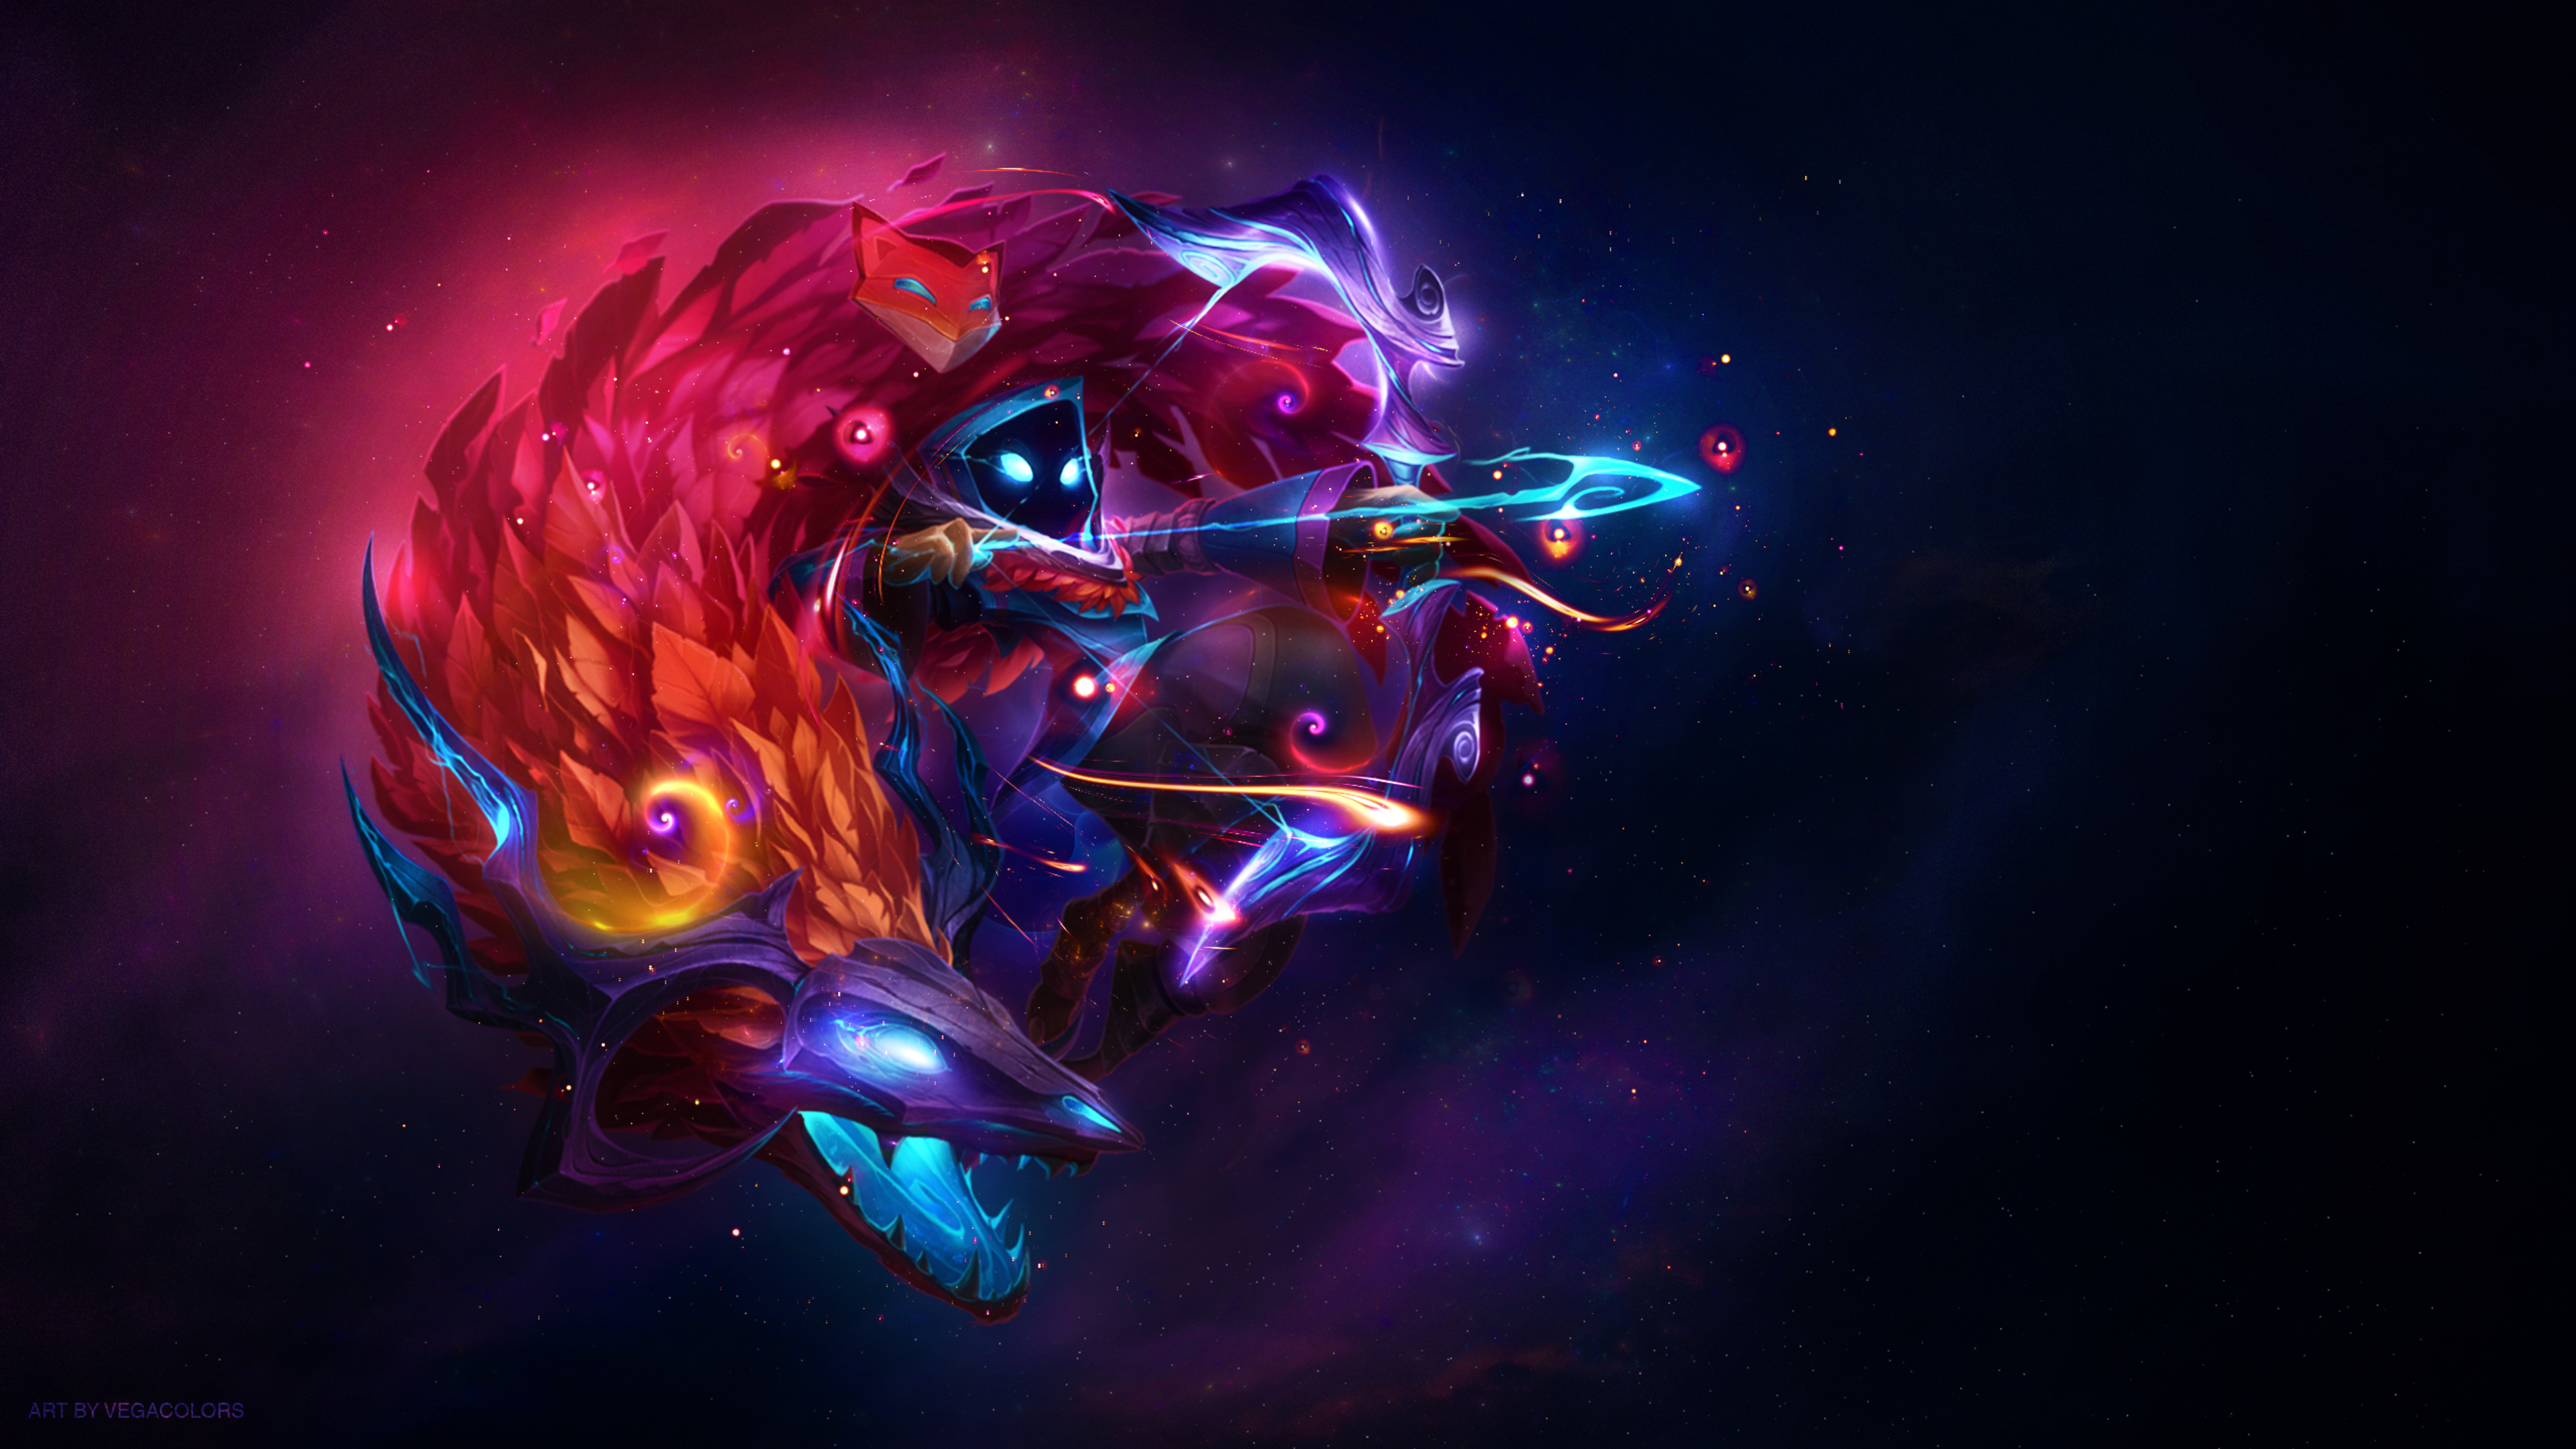 Kindred League Of Legends Wallpaper 4k Ultra Hd Id 2980